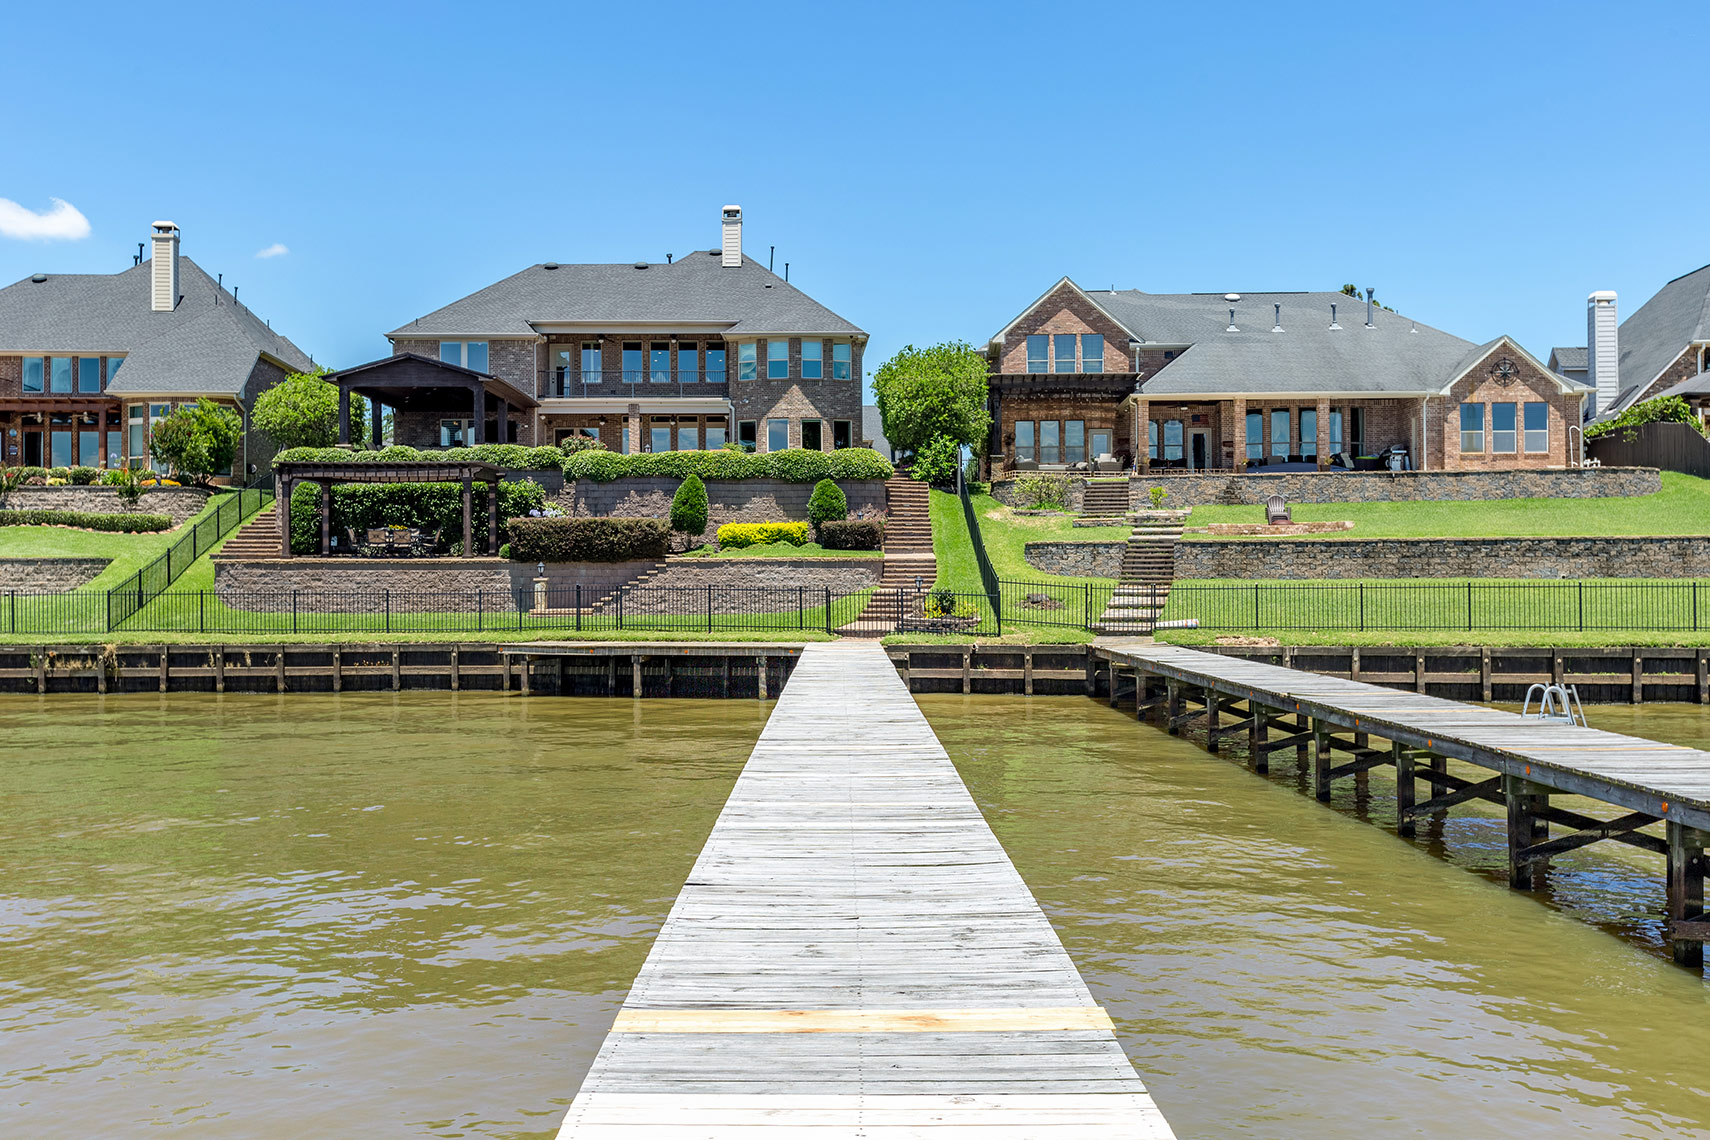 Lake-house-view-from-private-dock-in-Houston